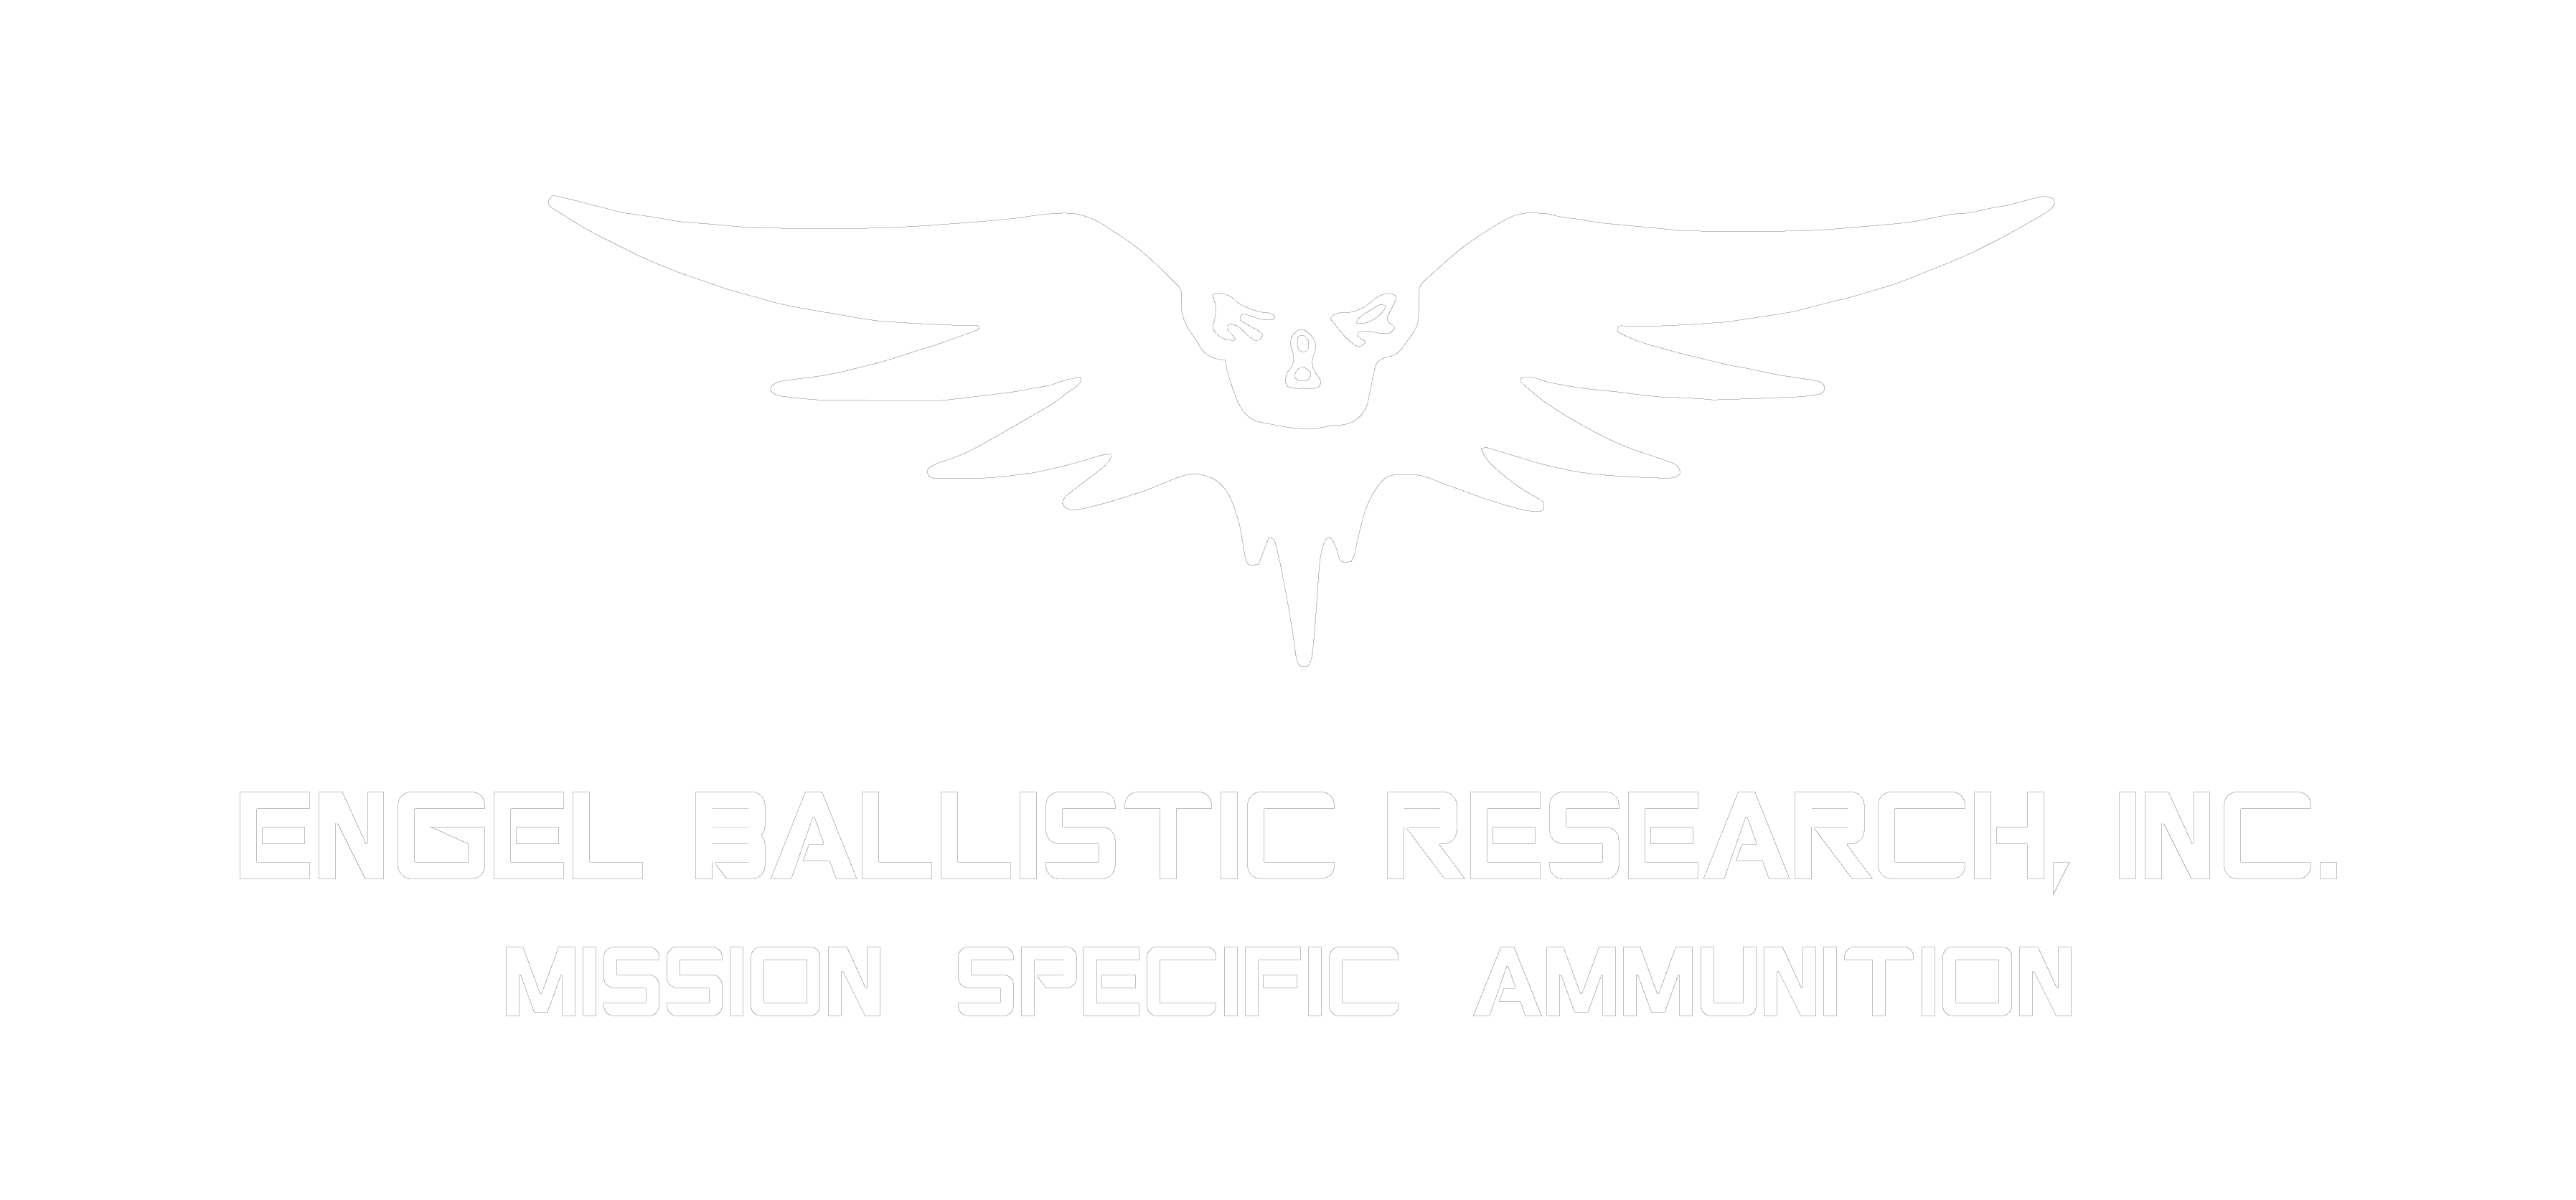 Engel Ballistic Research